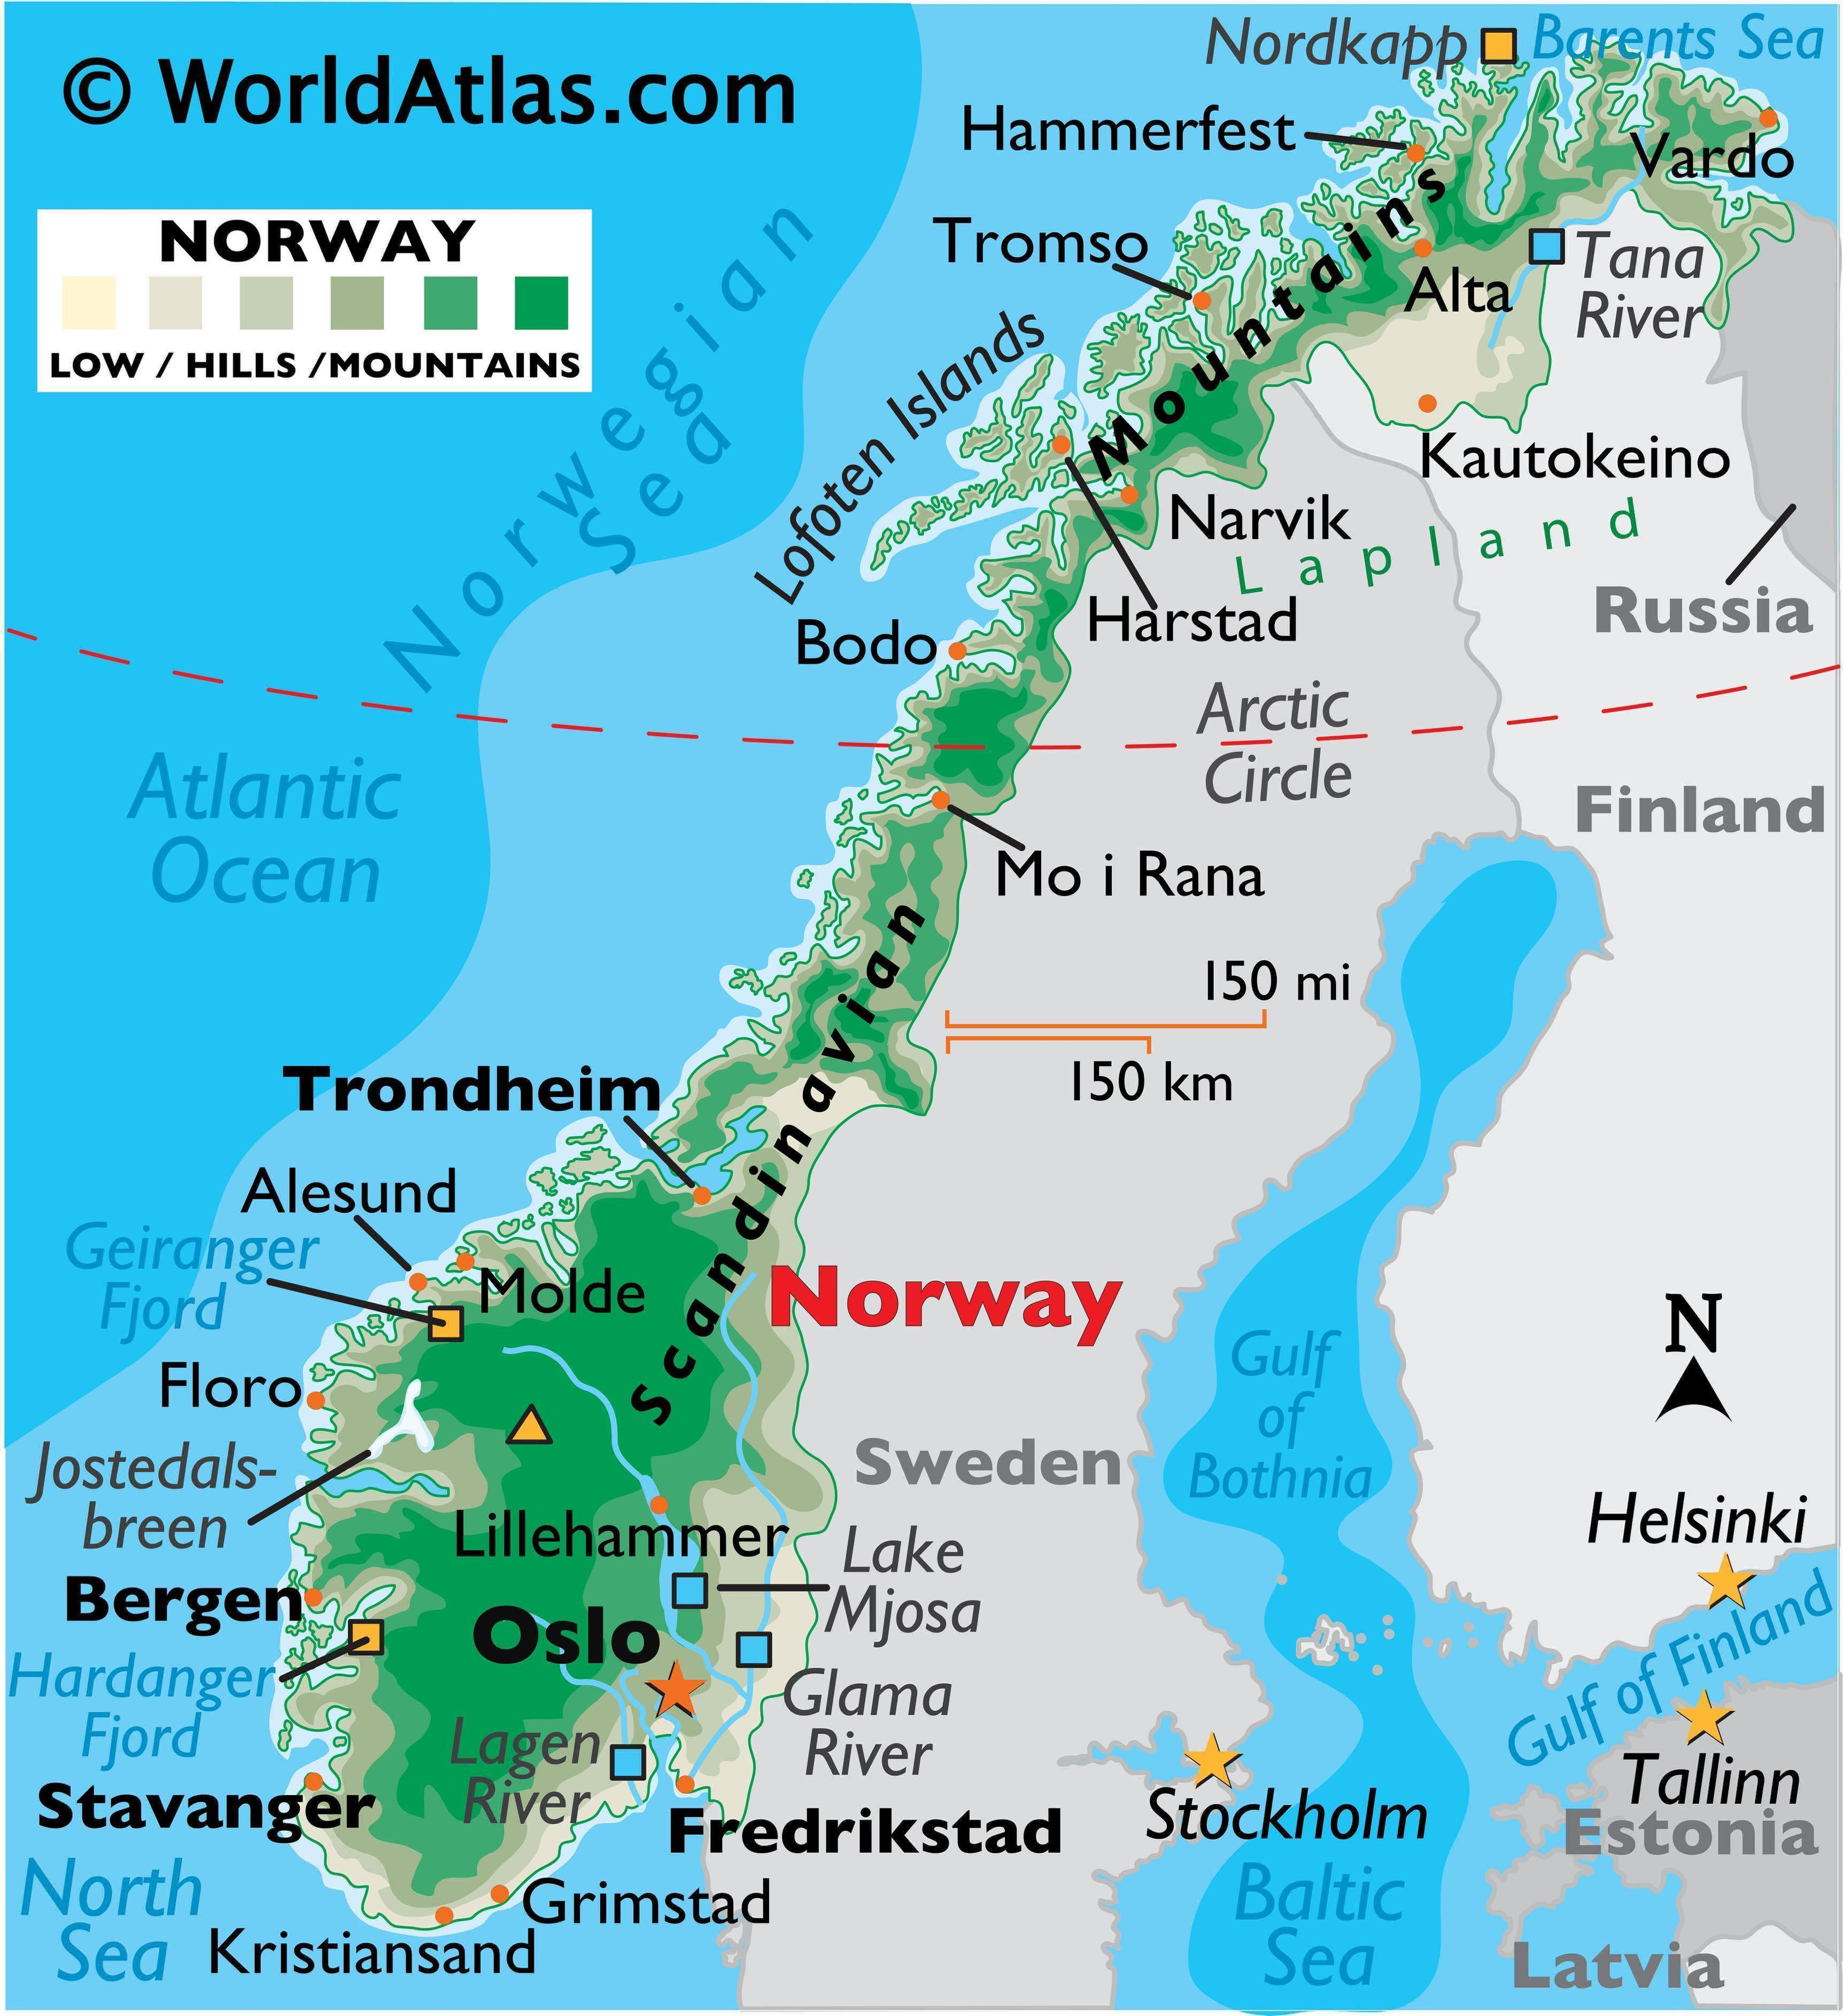 Physical Map of Norway showing relief, international boundaries, major rivers, mountain ranges, extreme points, important cities, islands, etc.